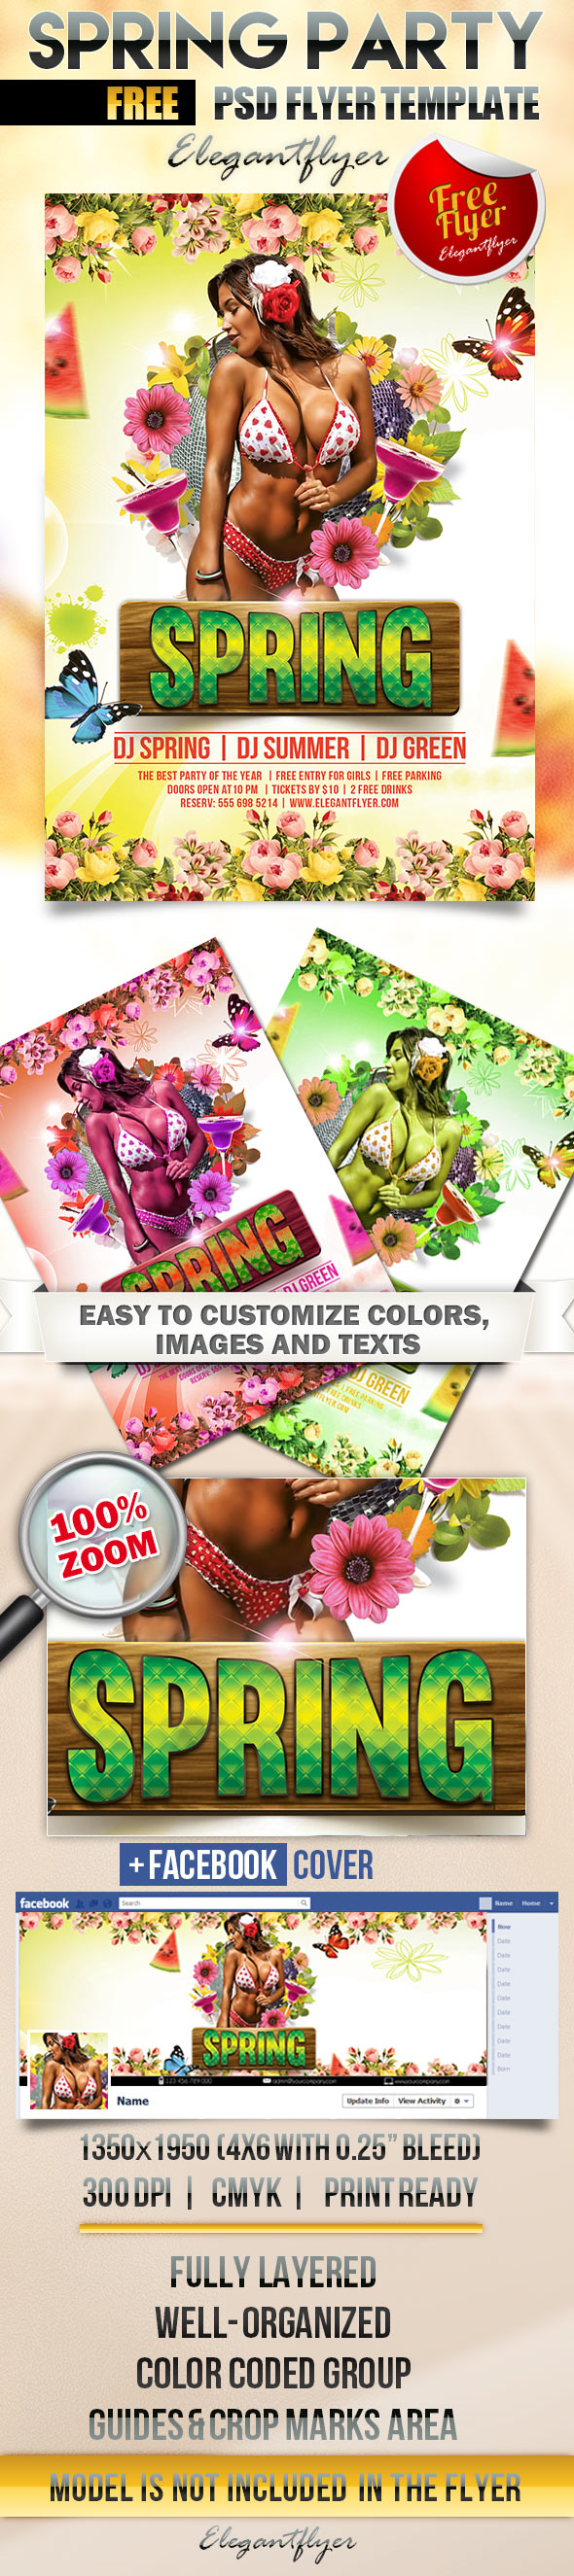 Spring  Free Flyer Psd Template  Facebook Cover HttpsWww